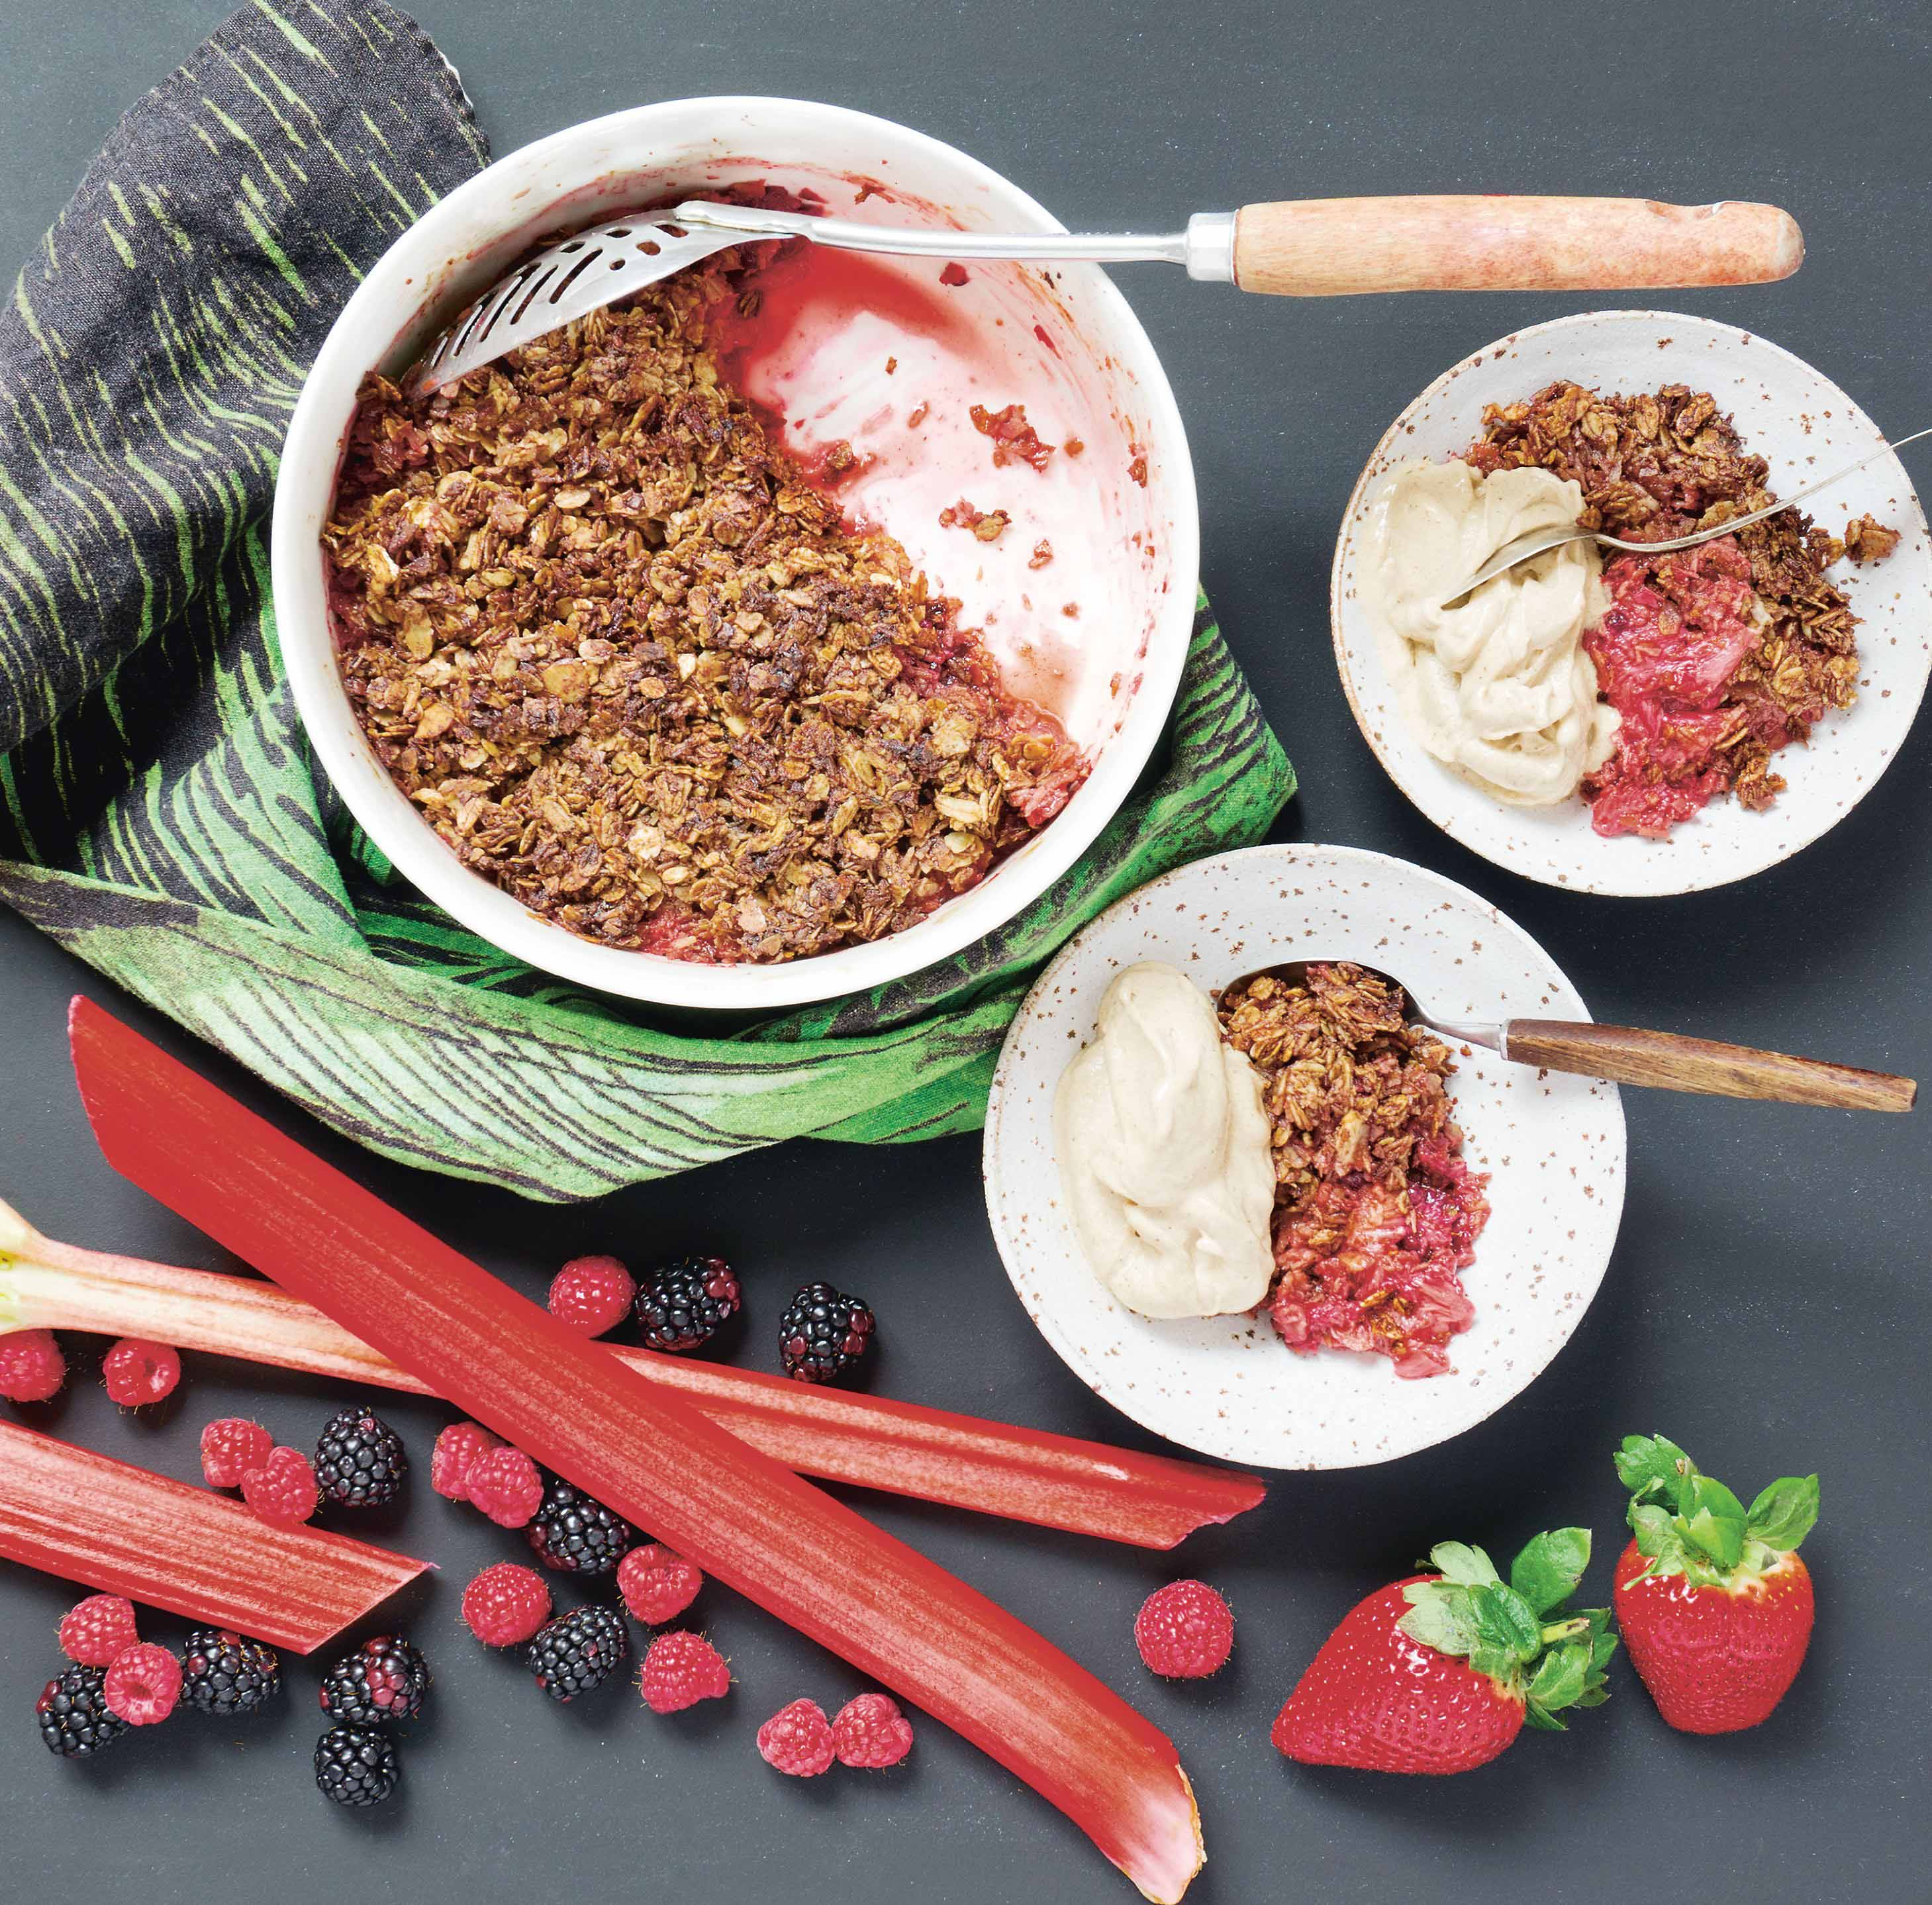 Rhubarb and berry crumble